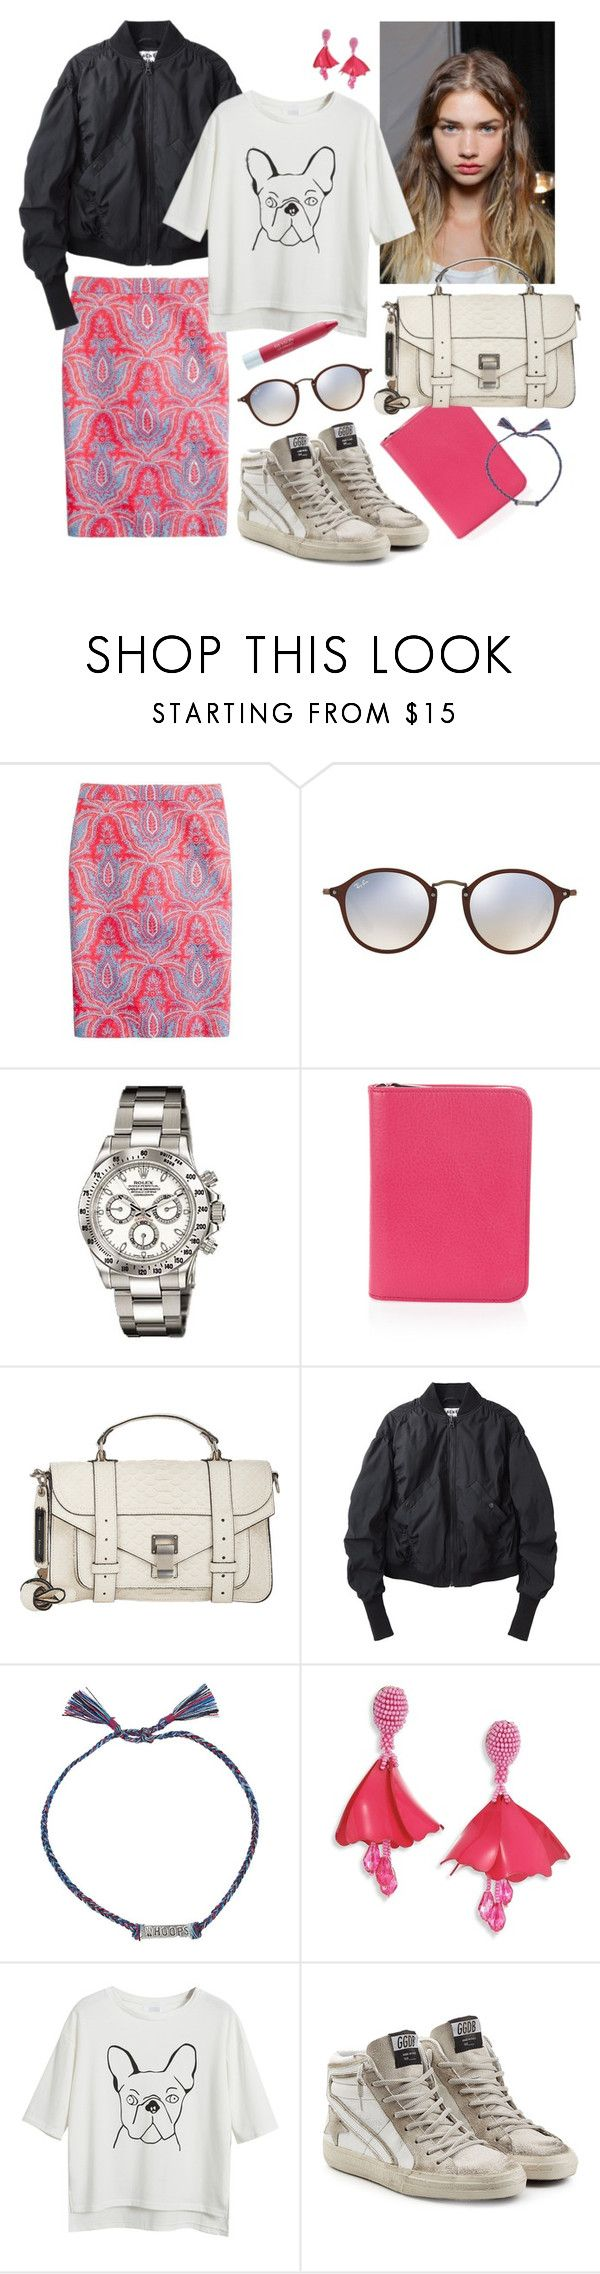 """Untitled #1577"" by doxophobia ❤ liked on Polyvore featuring J.Crew, Ray-Ban, Andrea, Mulberry, Charlotte Ronson, Proenza Schouler, Acne Studios, Mathias Chaize, Oscar de la Renta and Chicnova Fashion"